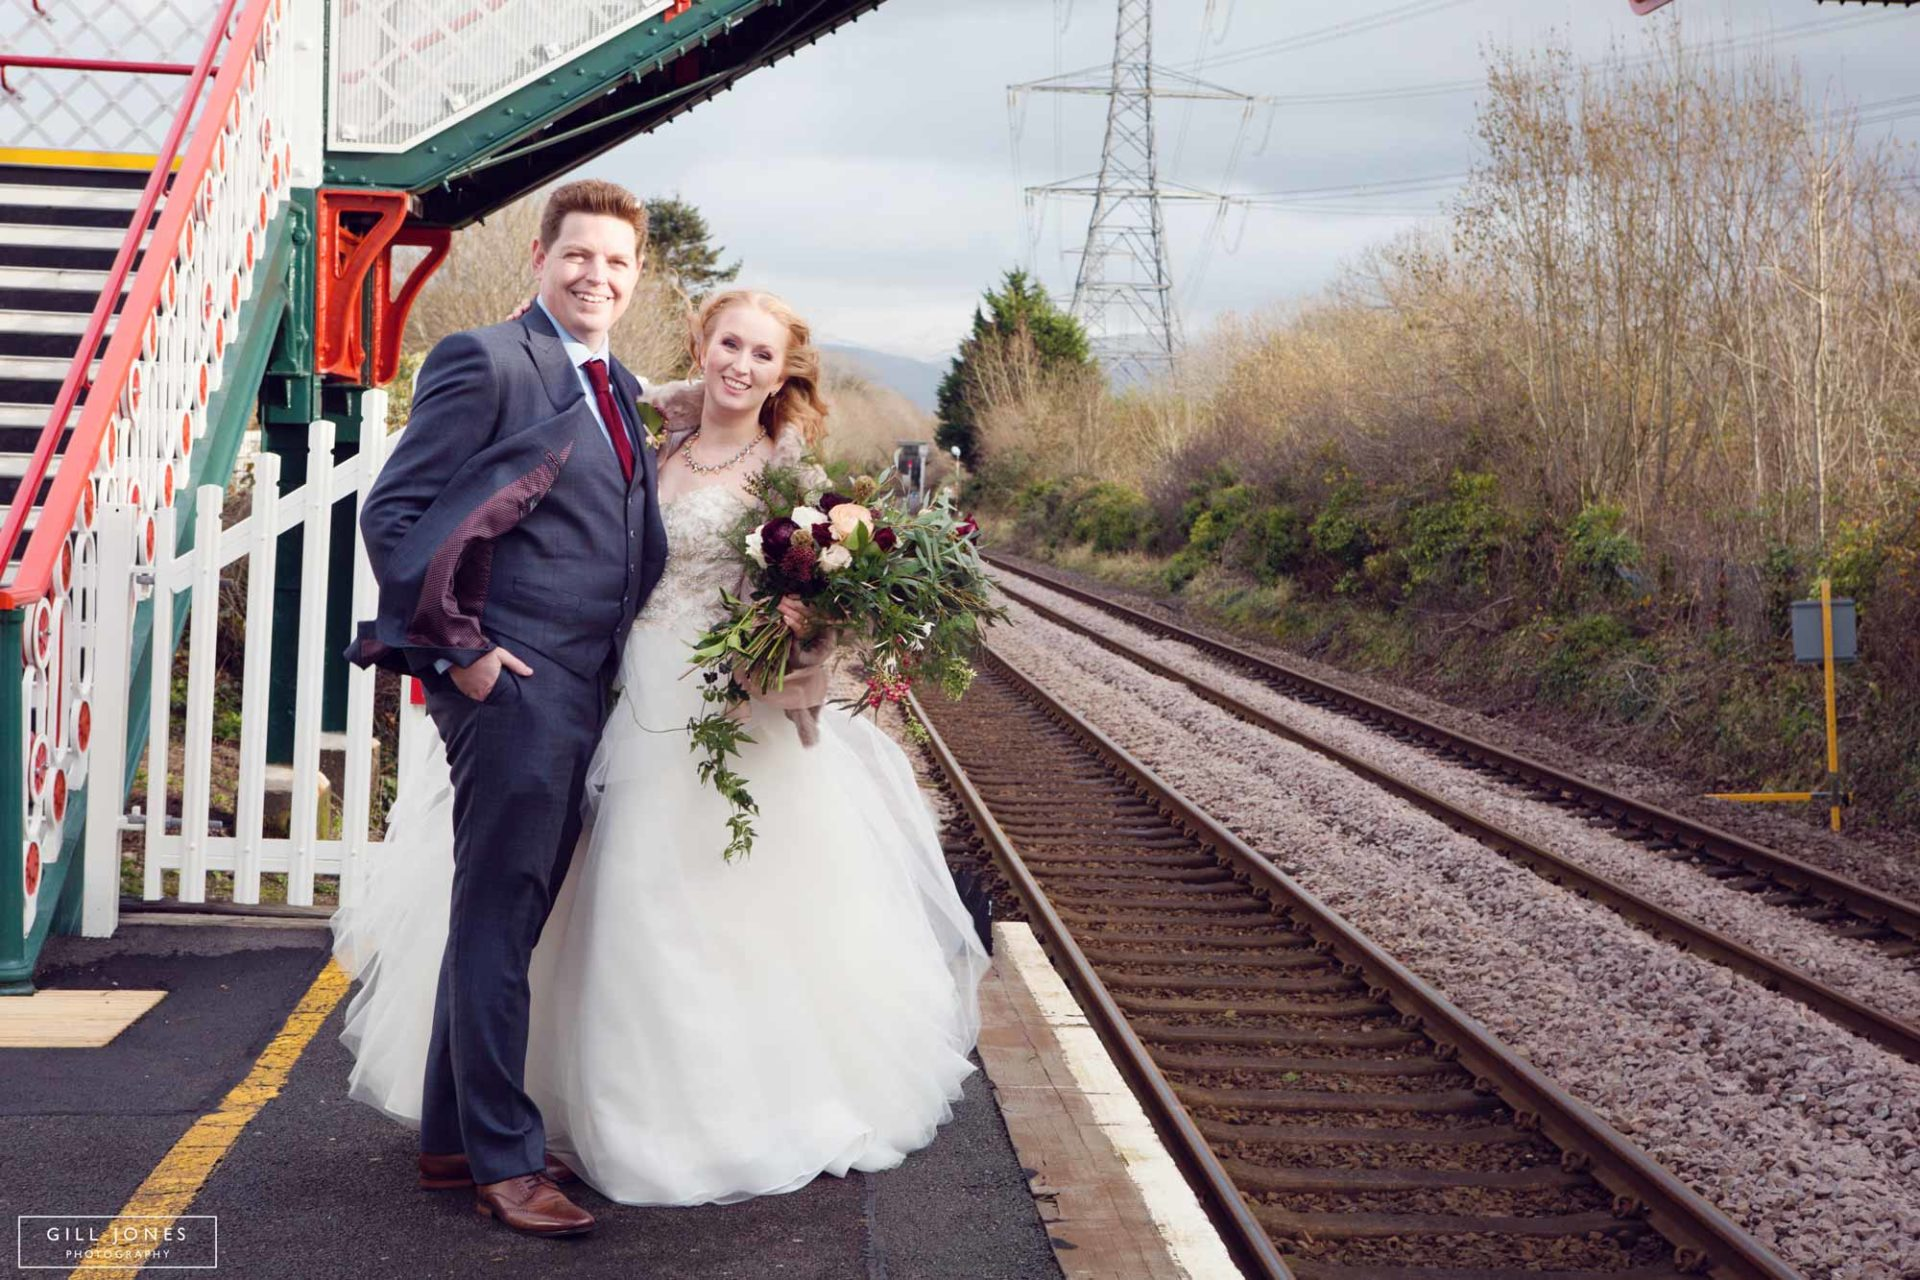 the bride and groom standing close at the rail station